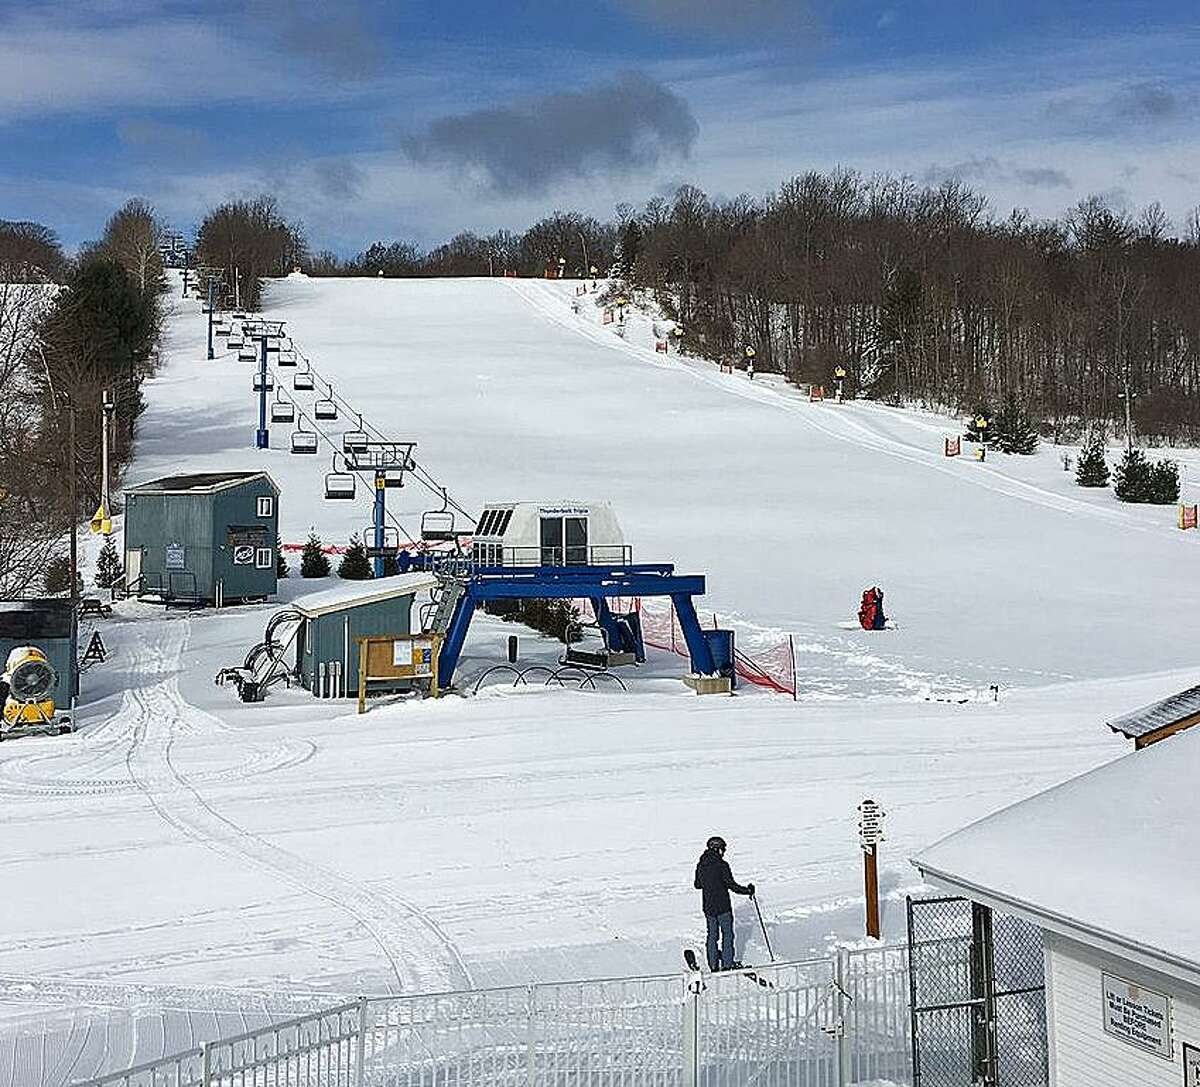 Mount Southington received 18 inches of snow from a nor'easter on Tuesday, March 14, 2017. The heavy snow allowed it to open all its trails. On Friday, March 17, 2017, Southington will be charging just $17 for tickets for St. Patrick's Day.